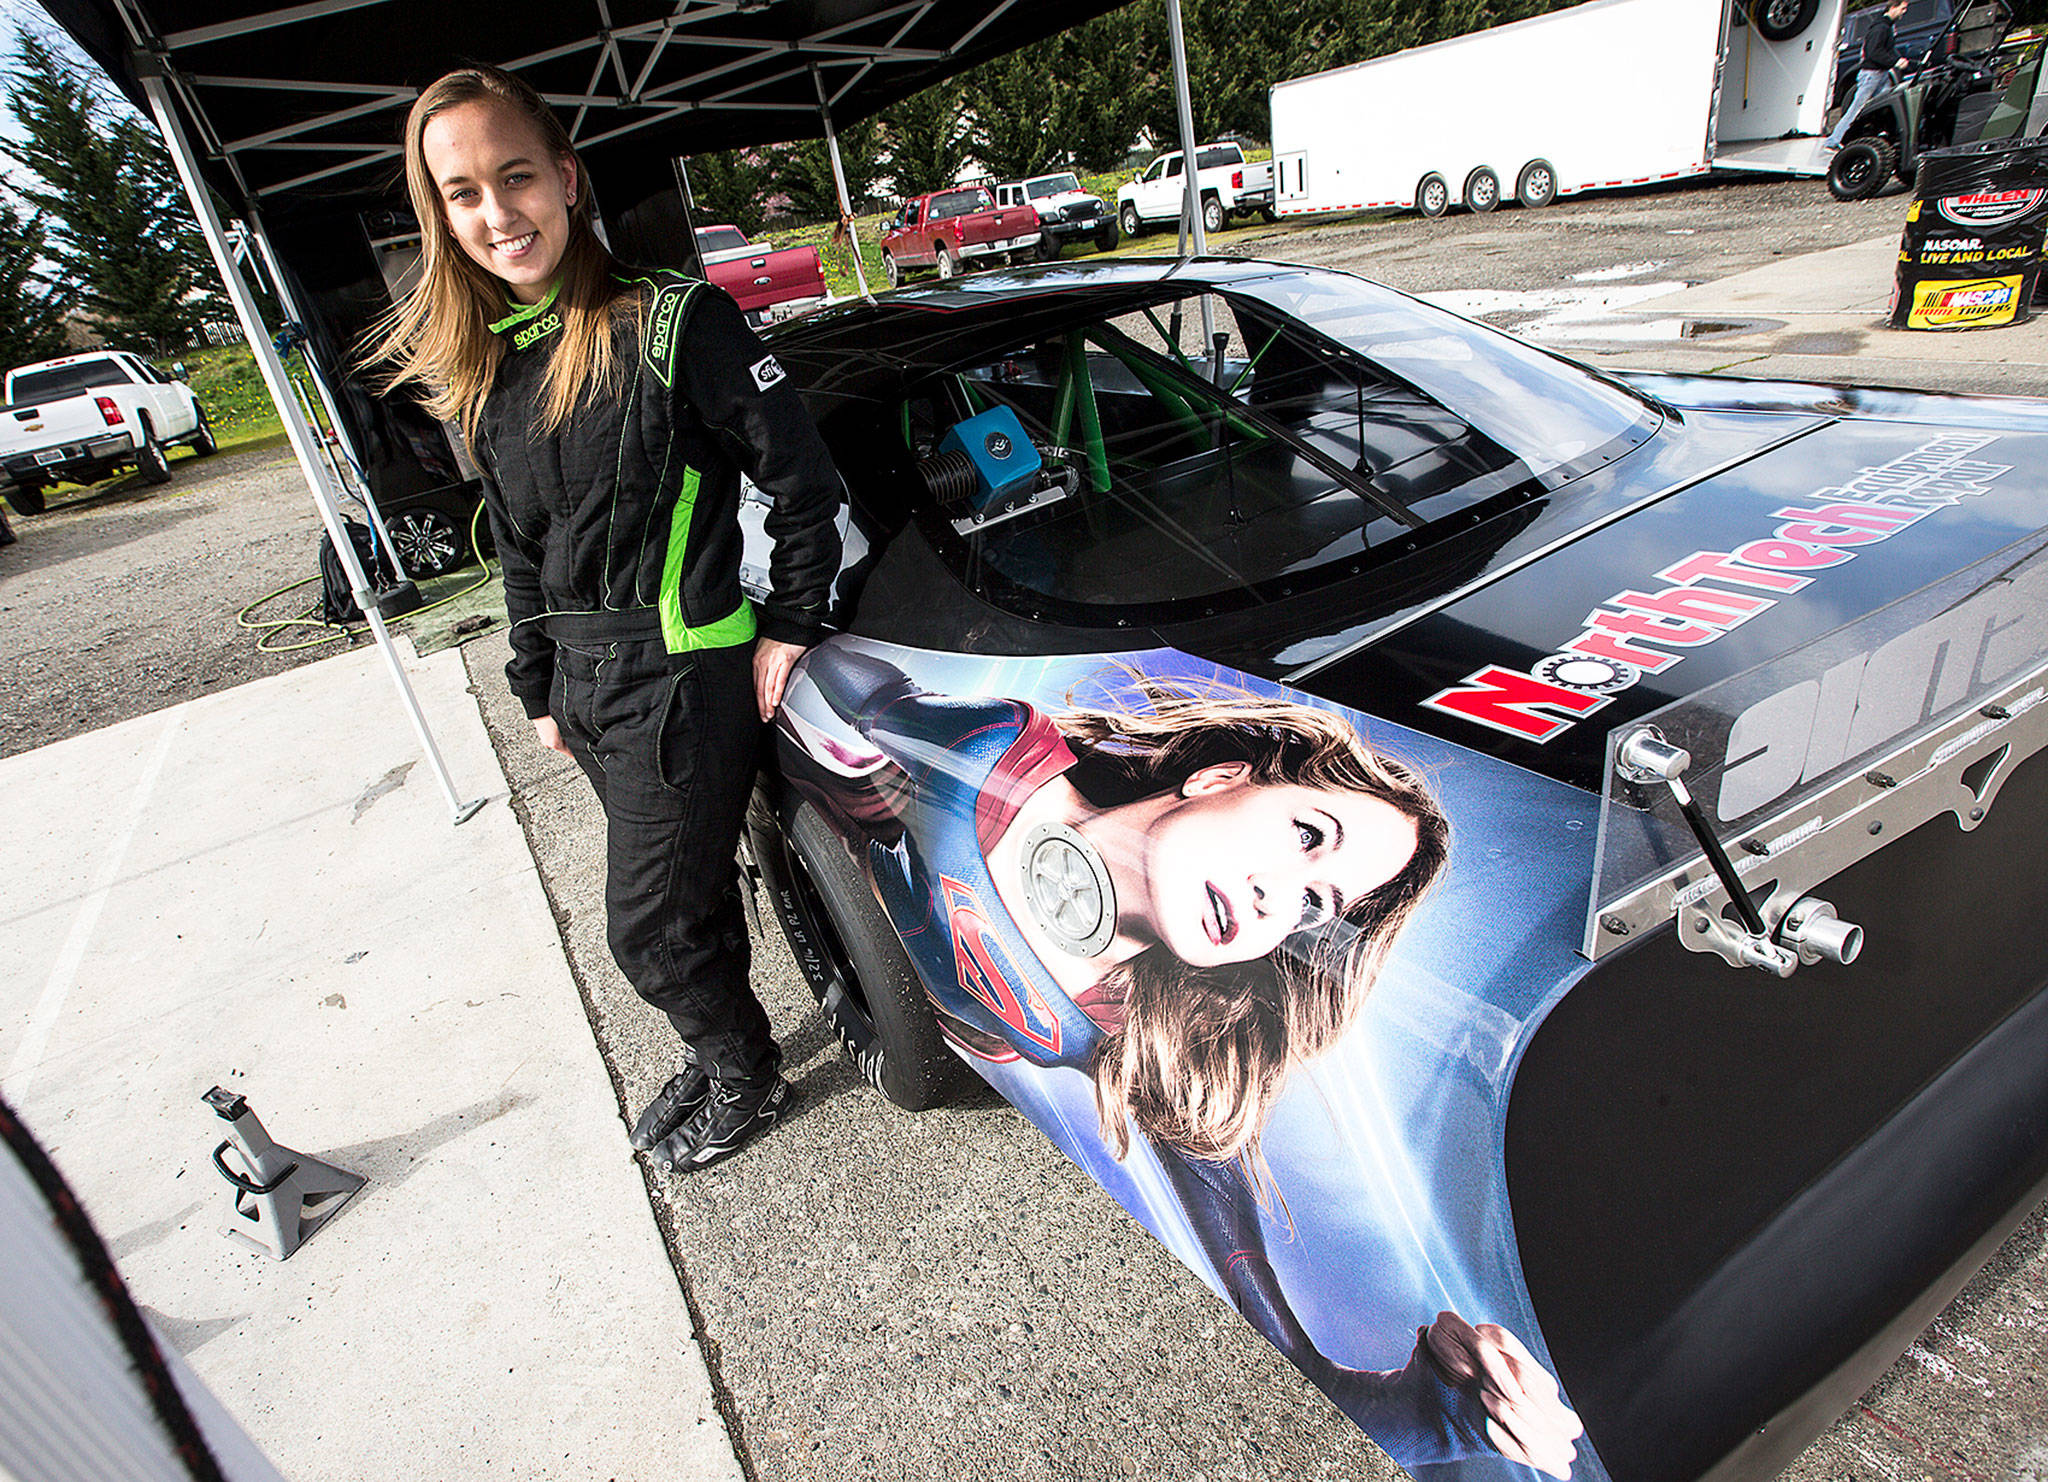 """Brittney Zamora stands next to her """"Supergirl"""" Super Late Model race car at the Evergreen Speedway. (Ian Terry / The Herald)"""